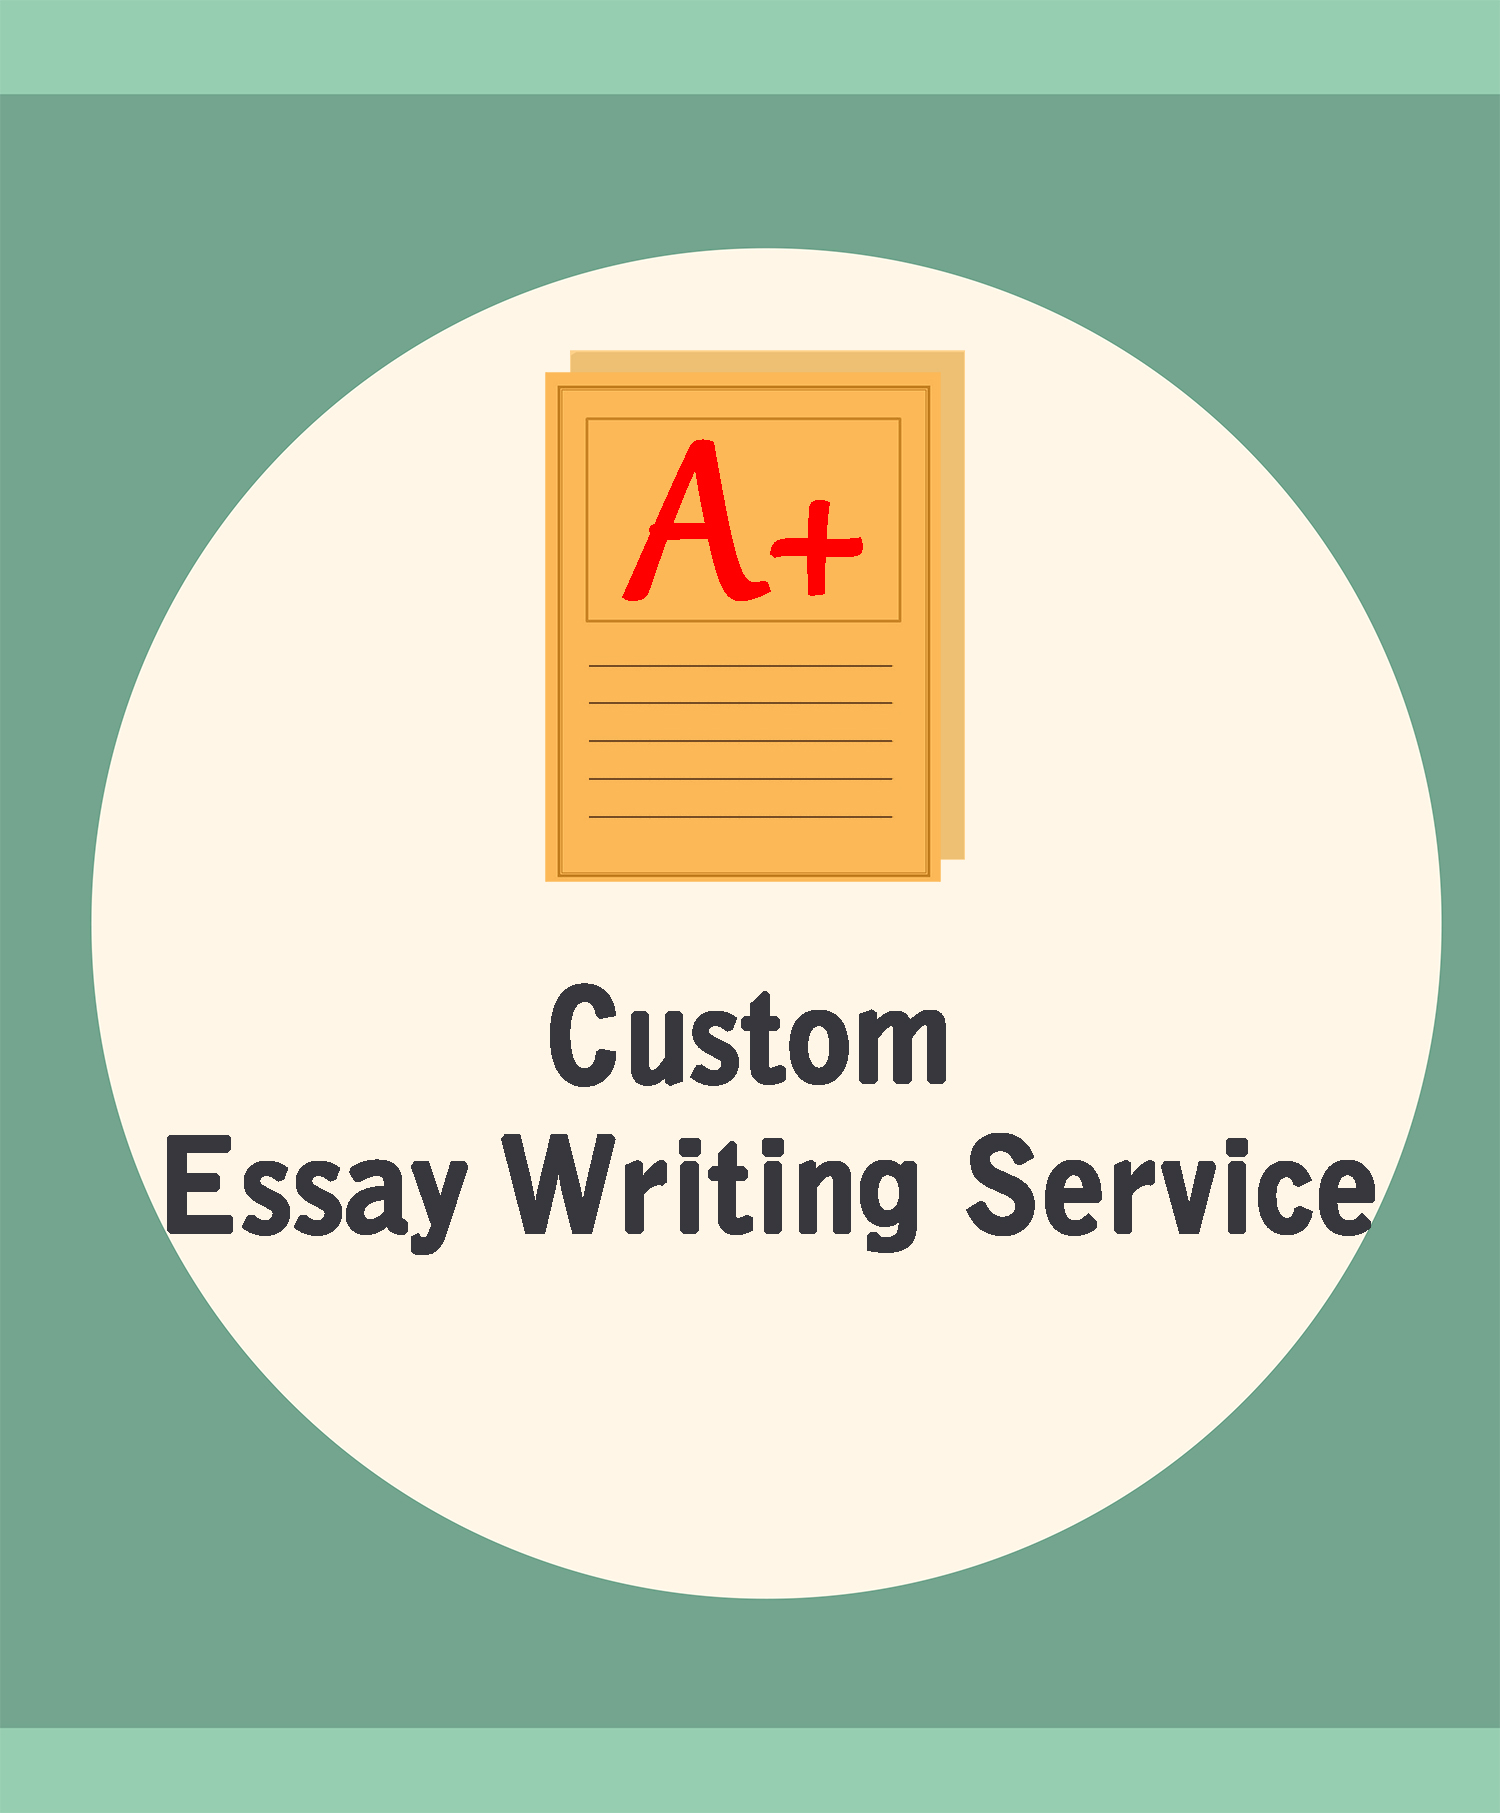 custom paper writing services custom paper writing services  custom paper writing services custom paper writing services tk